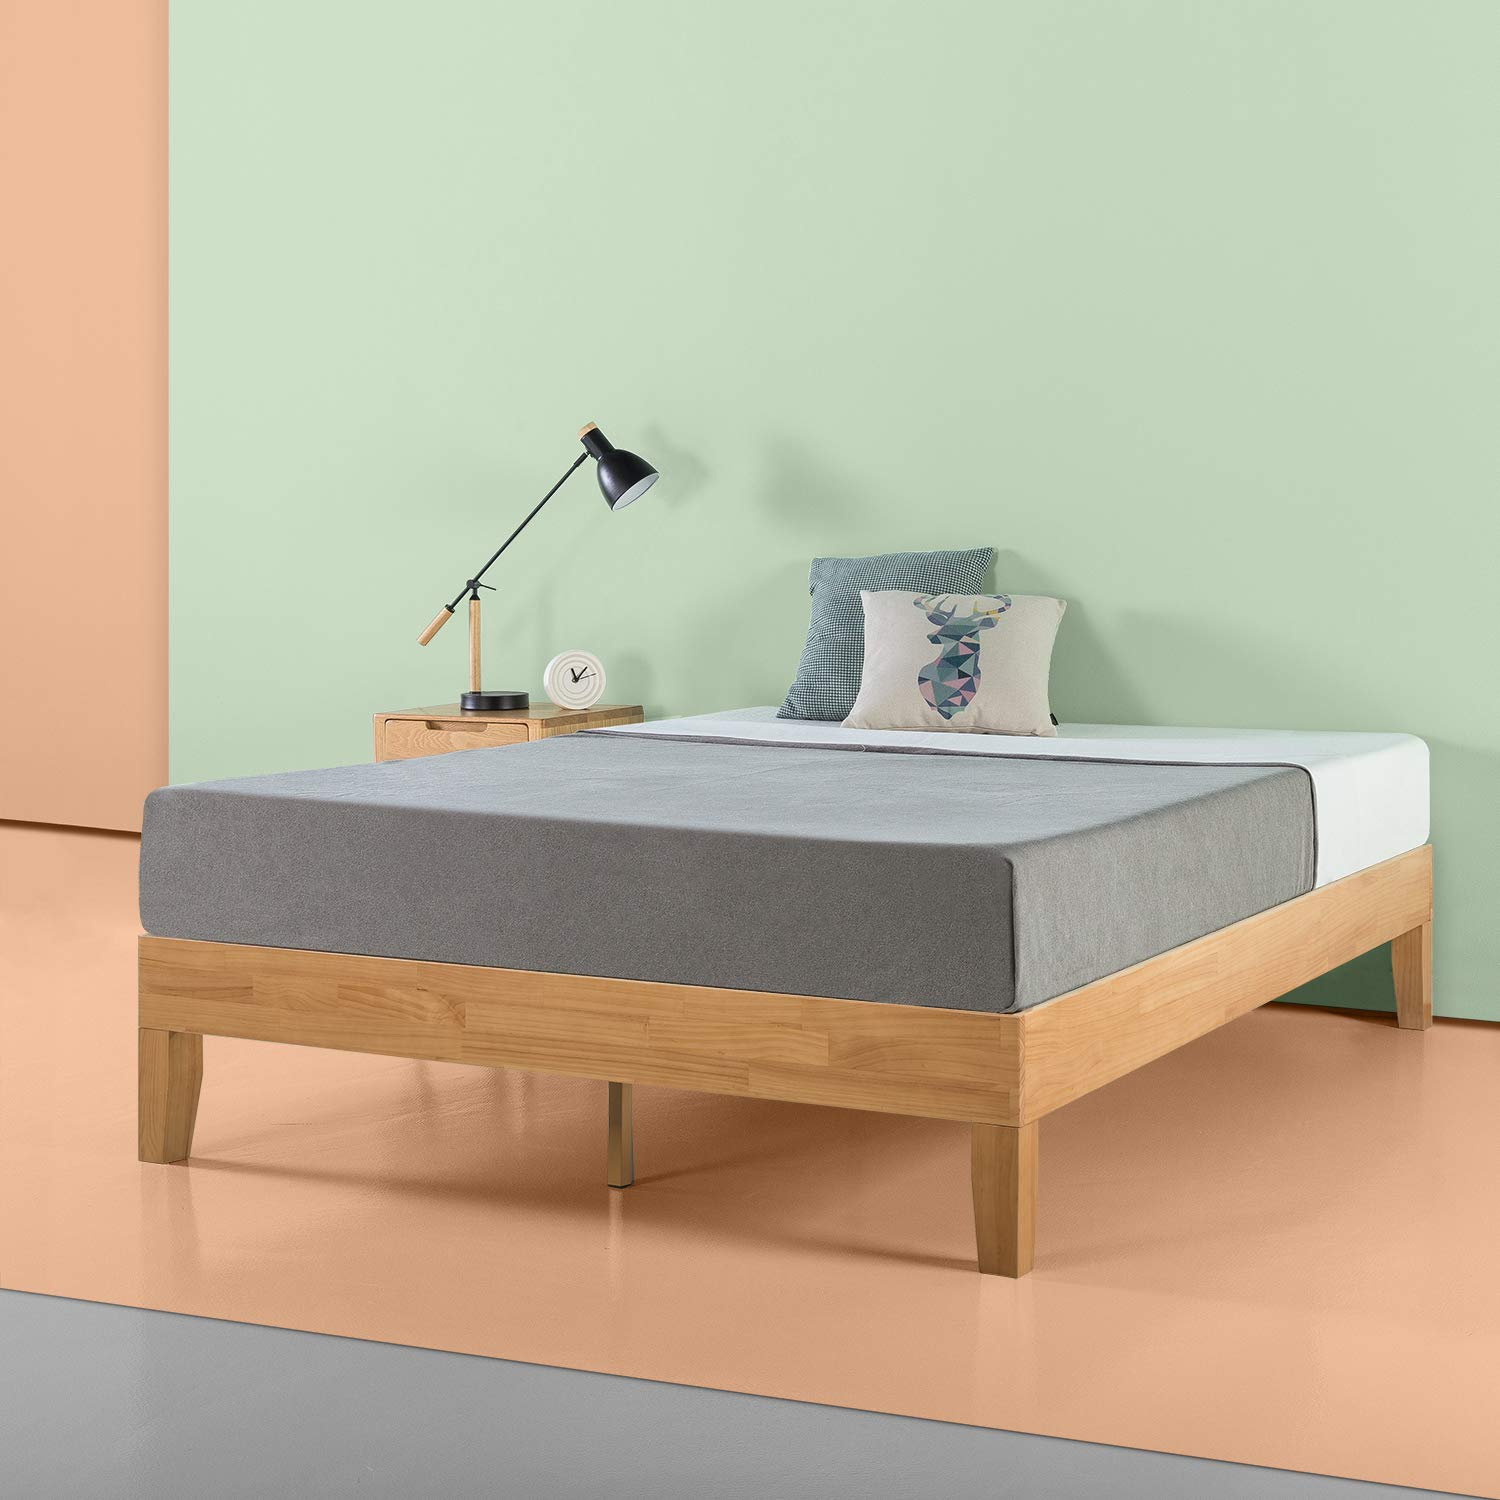 Zinus Moiz 14 Inch Deluxe Solid Wood Platform Bed Frame with Wood Slat Support / No Box Spring Needed, Queen